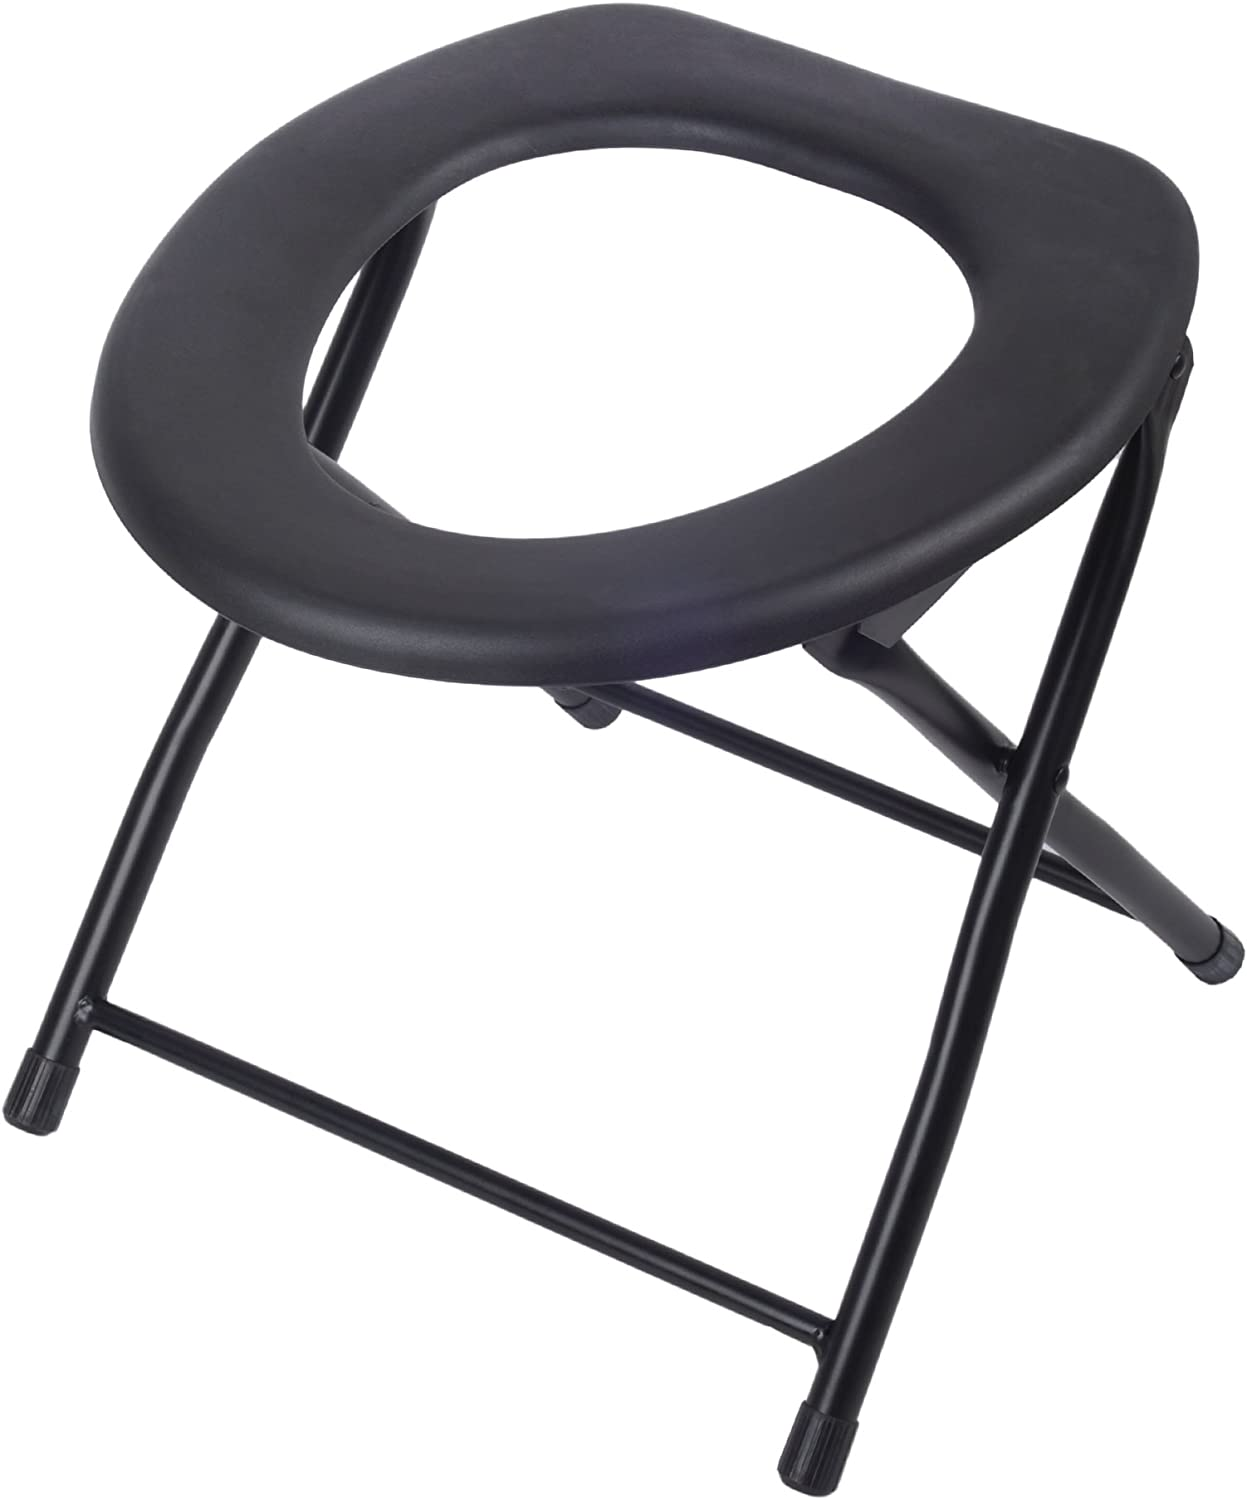 Folding Commode Chair Portable Toilet Seat, 9 Pounds Capacity PTS9